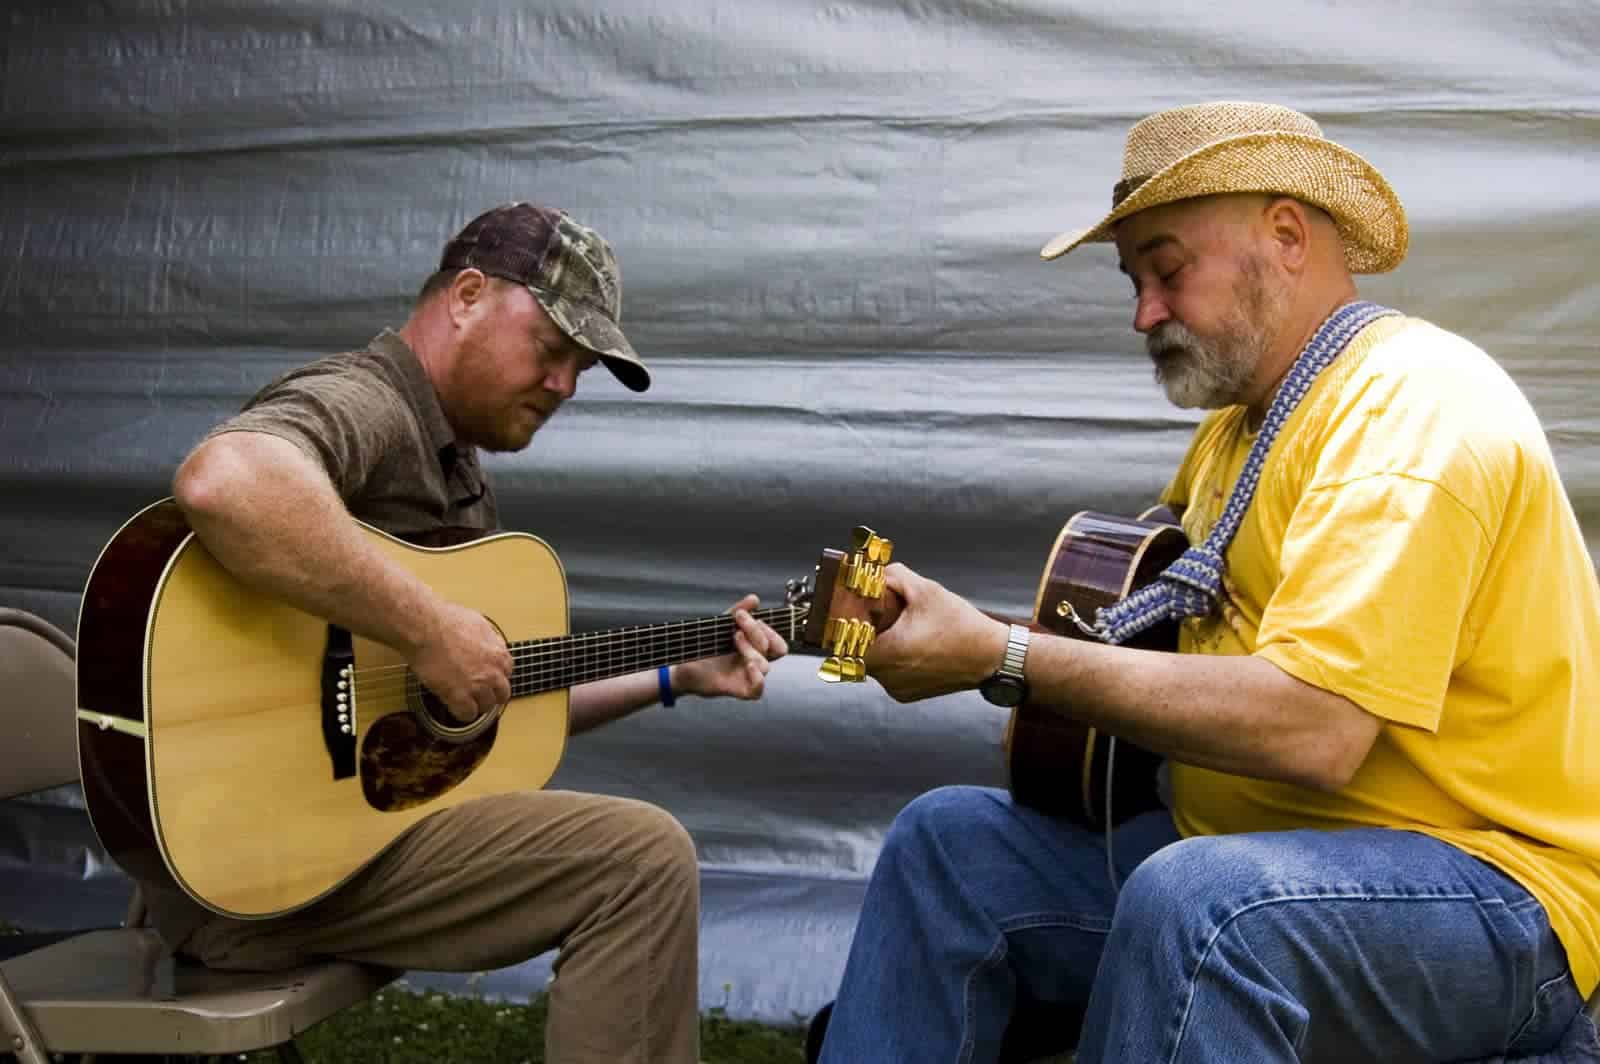 Appalachia has both a rich culture and many examples of success, despite what you might see on TV. A couple of participants in the guitar competition at the 2014 Wayne C Henderson Music Festival and Guitar Competition in Mouth of Wilson, Virginia. Photo by Virginia State Parks/Flickr